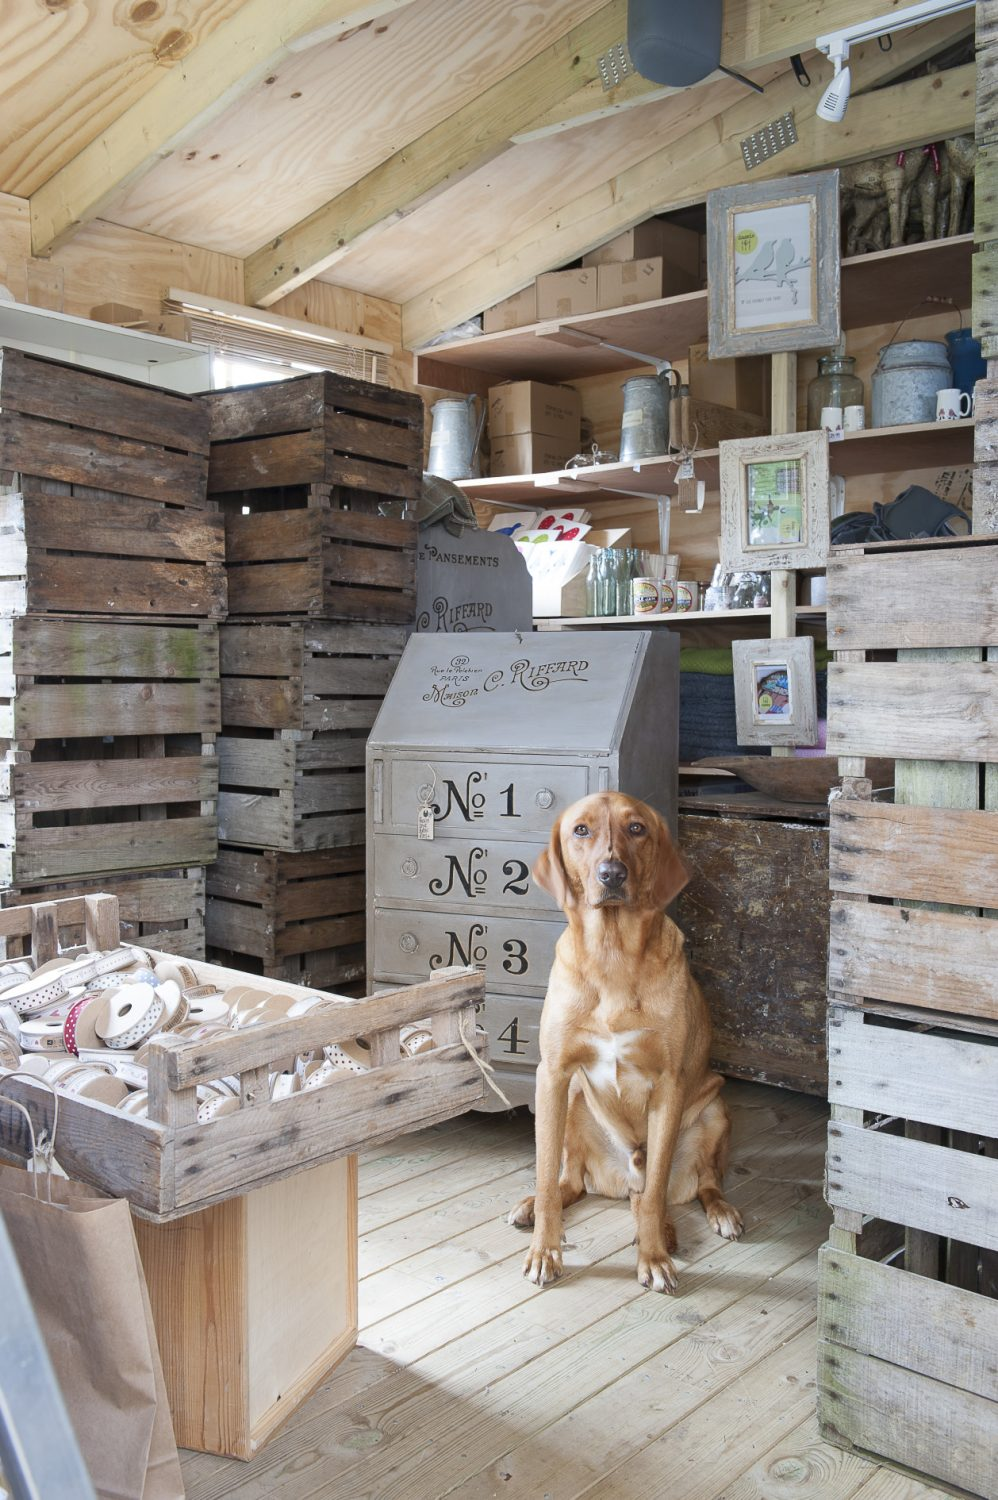 Bertie the Labrador sits patiently amongst a new delivery of old wooden pear crates which Tina intends to use to display Liberty Bee products at fairs and shows